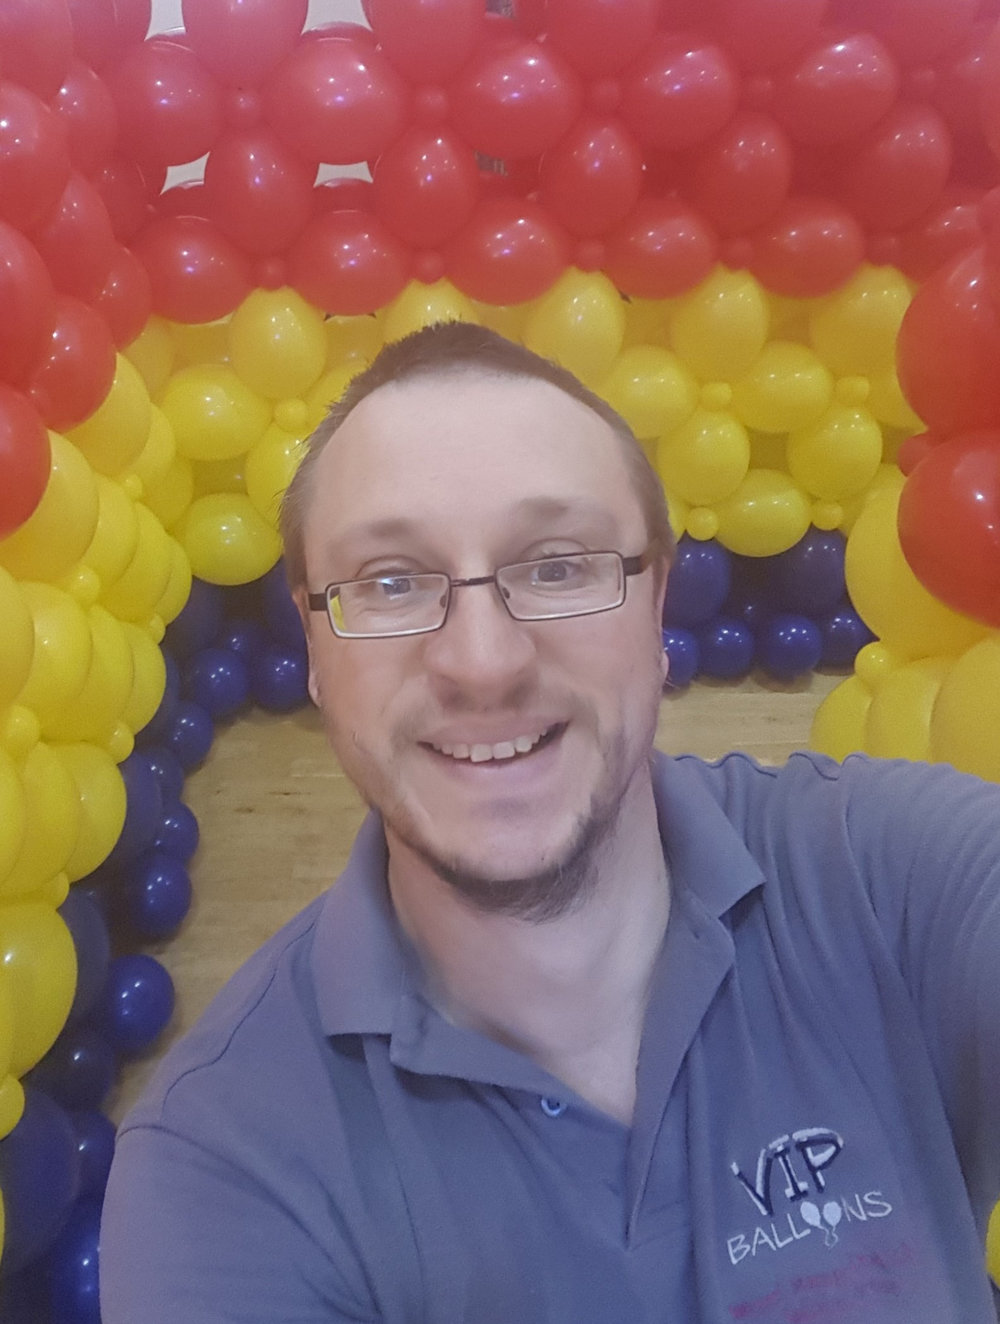 Balloon artist Samuel Stamp-Dod with a balloon wall